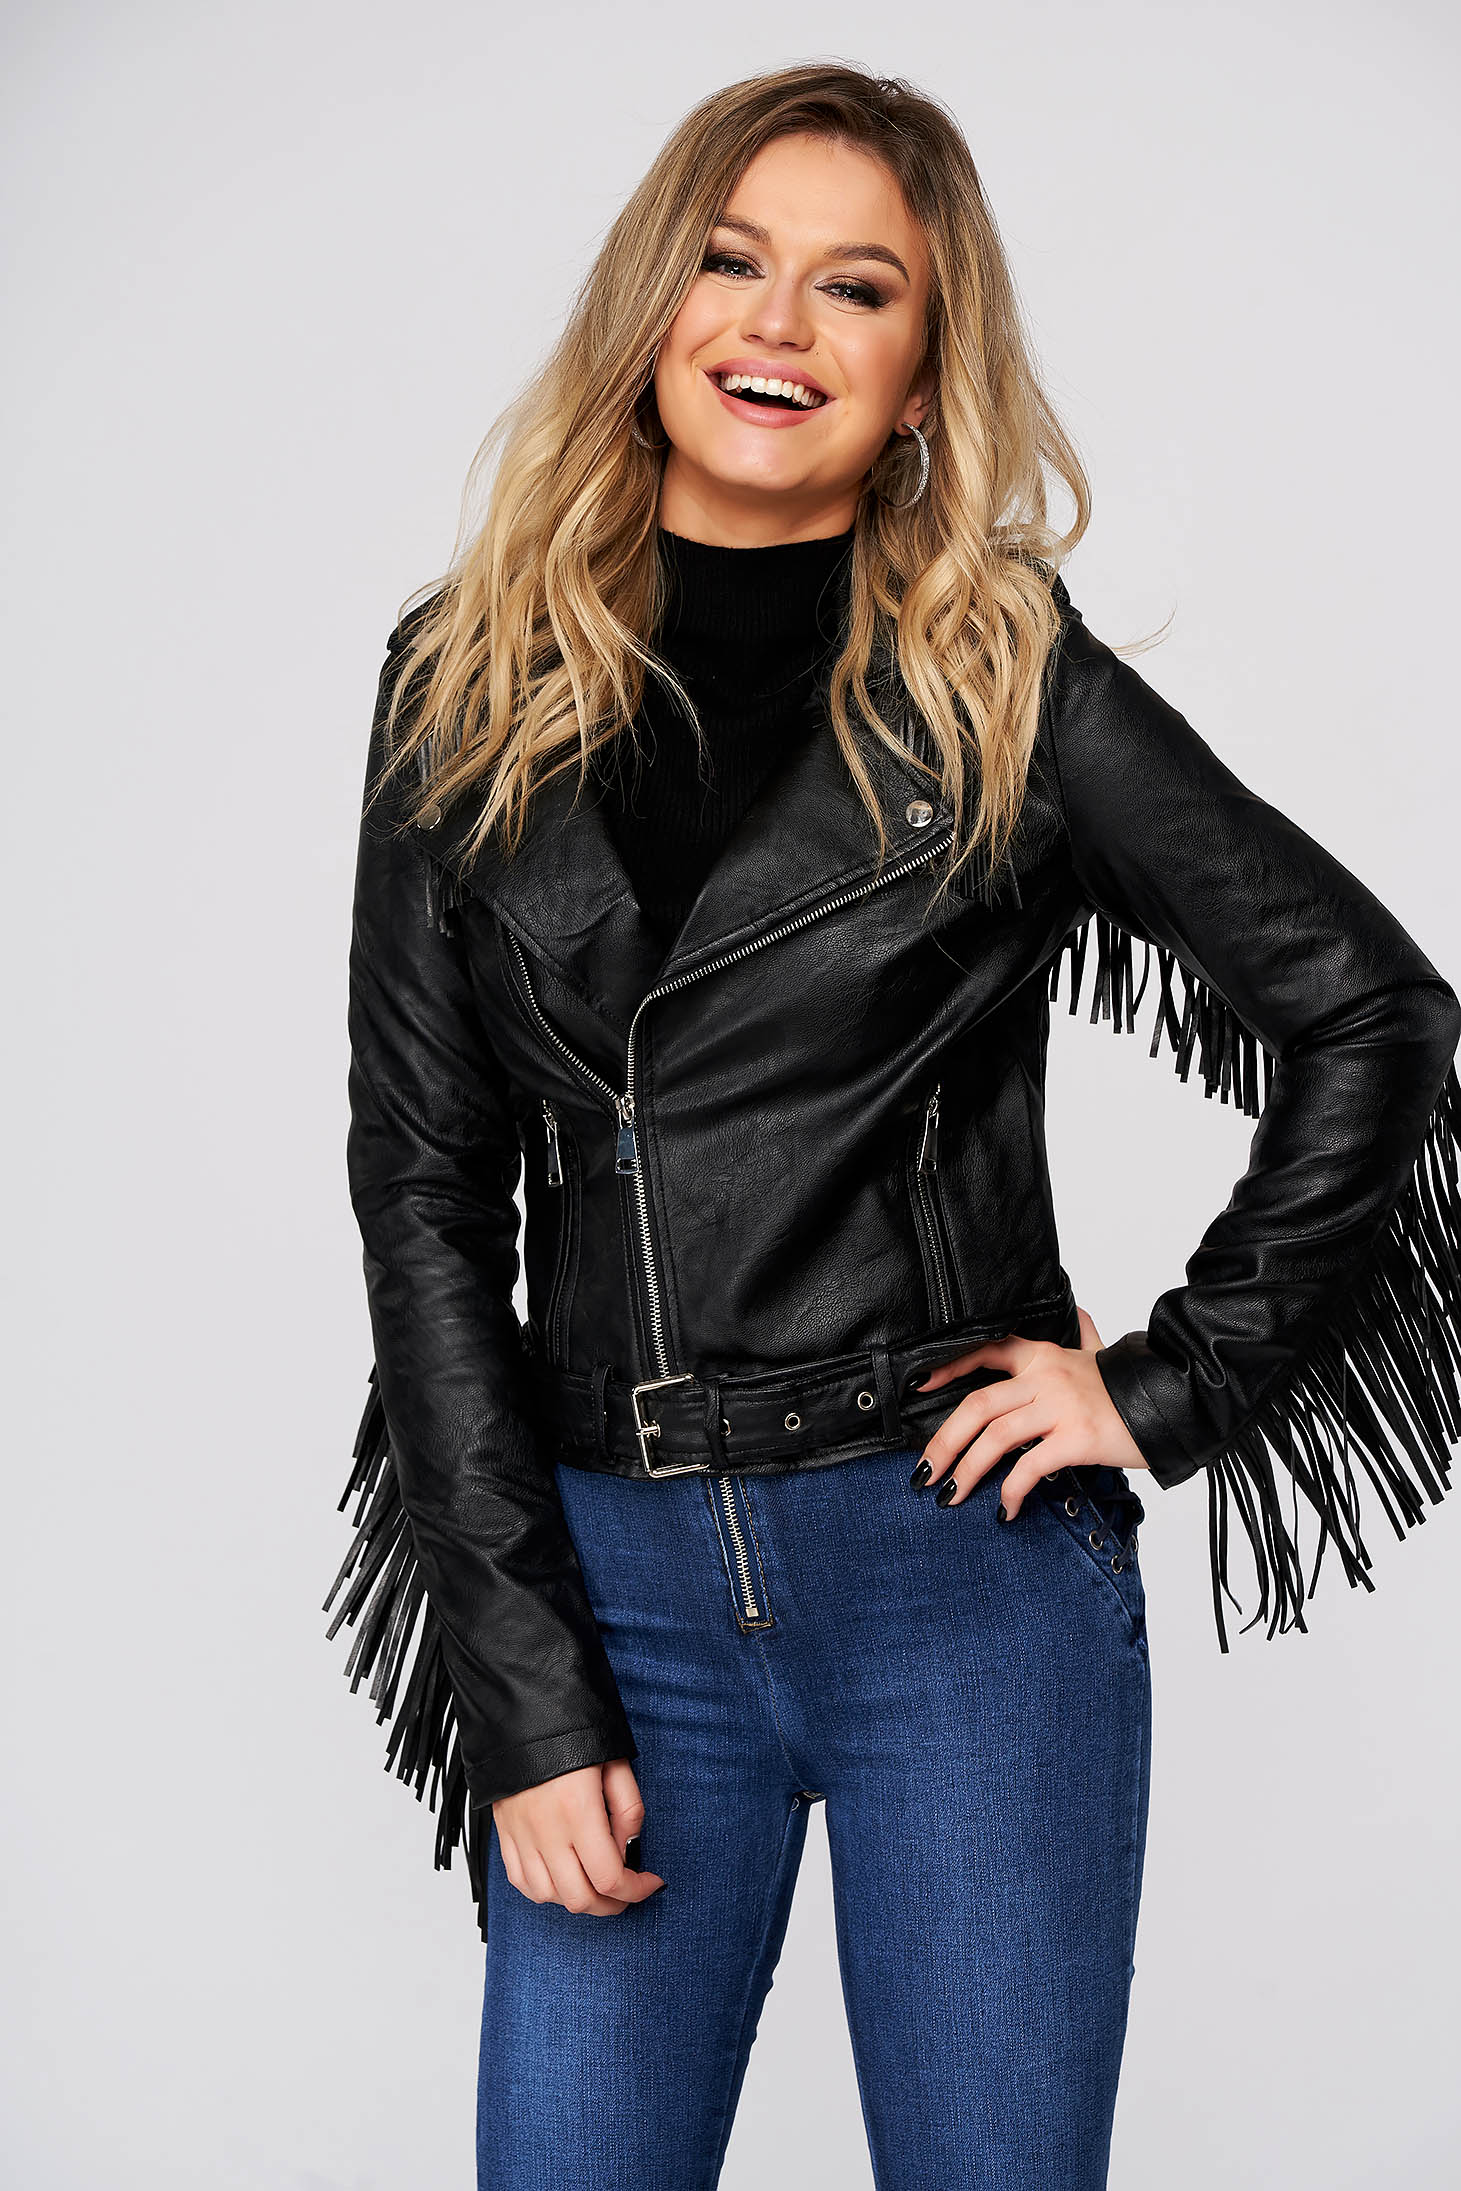 Black jacket casual short cut from ecological leather fringes